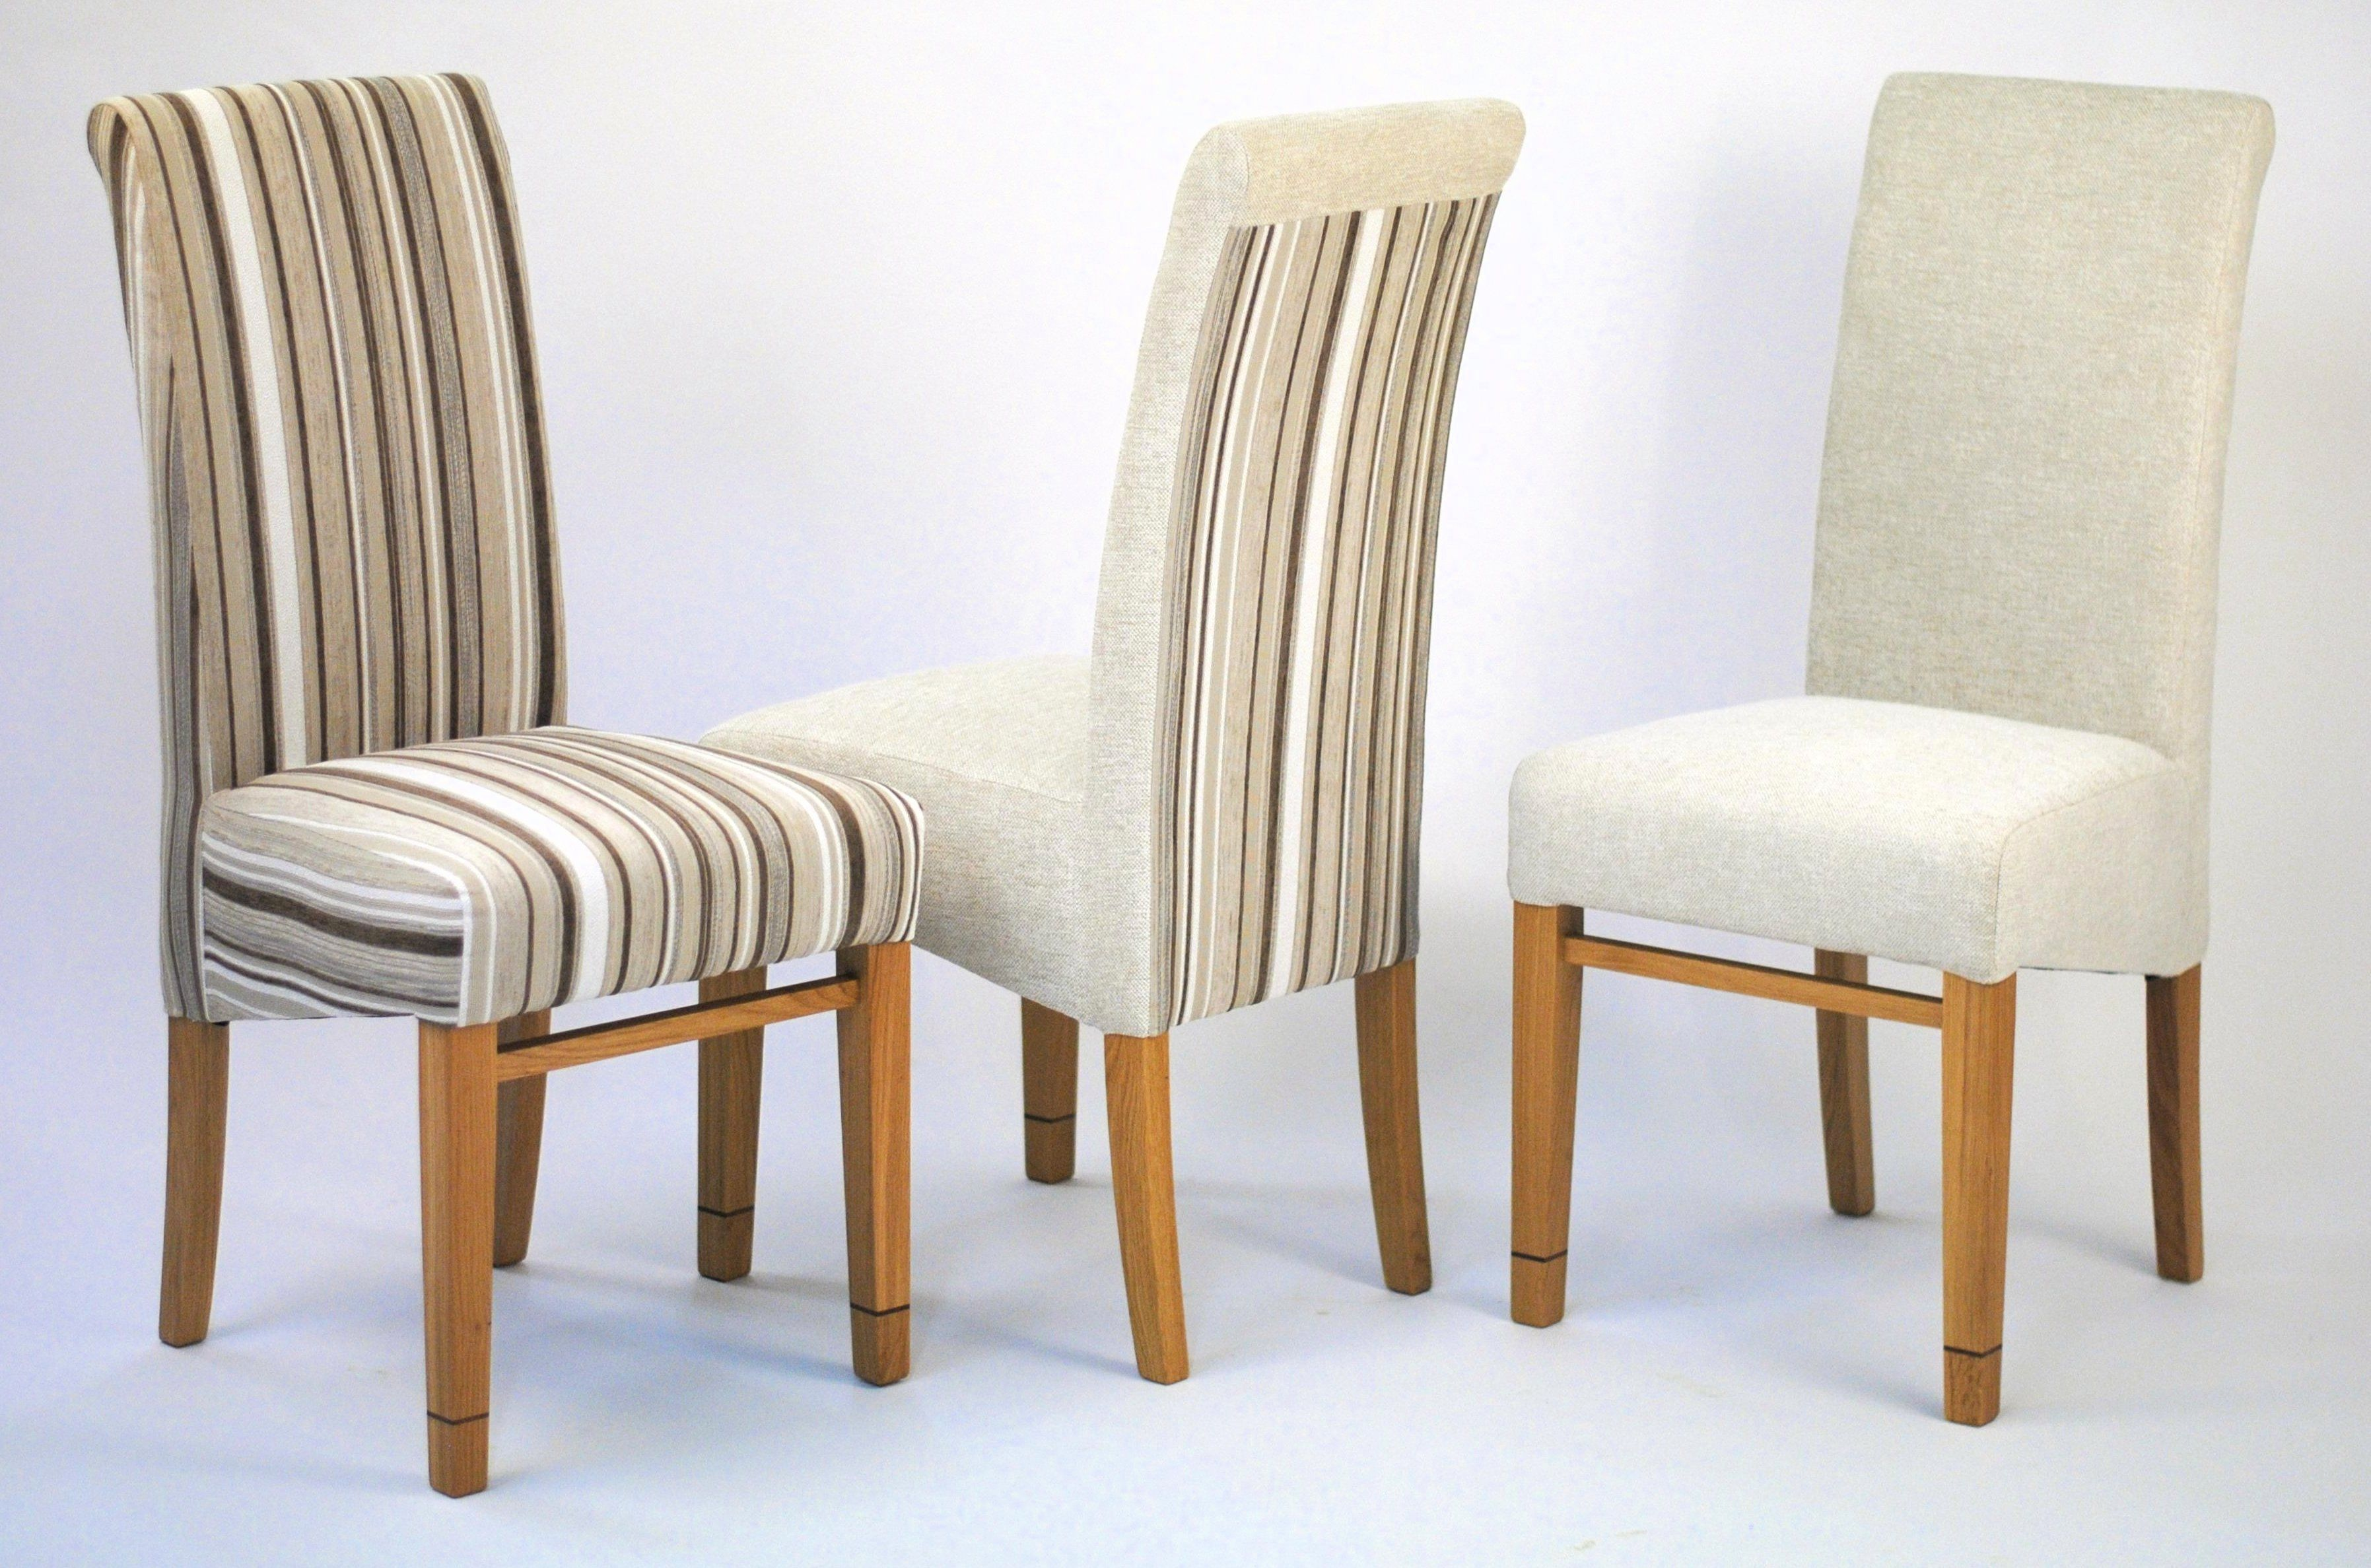 Bow515 Upholstered Dining Chair Upholstered Dining Chairs